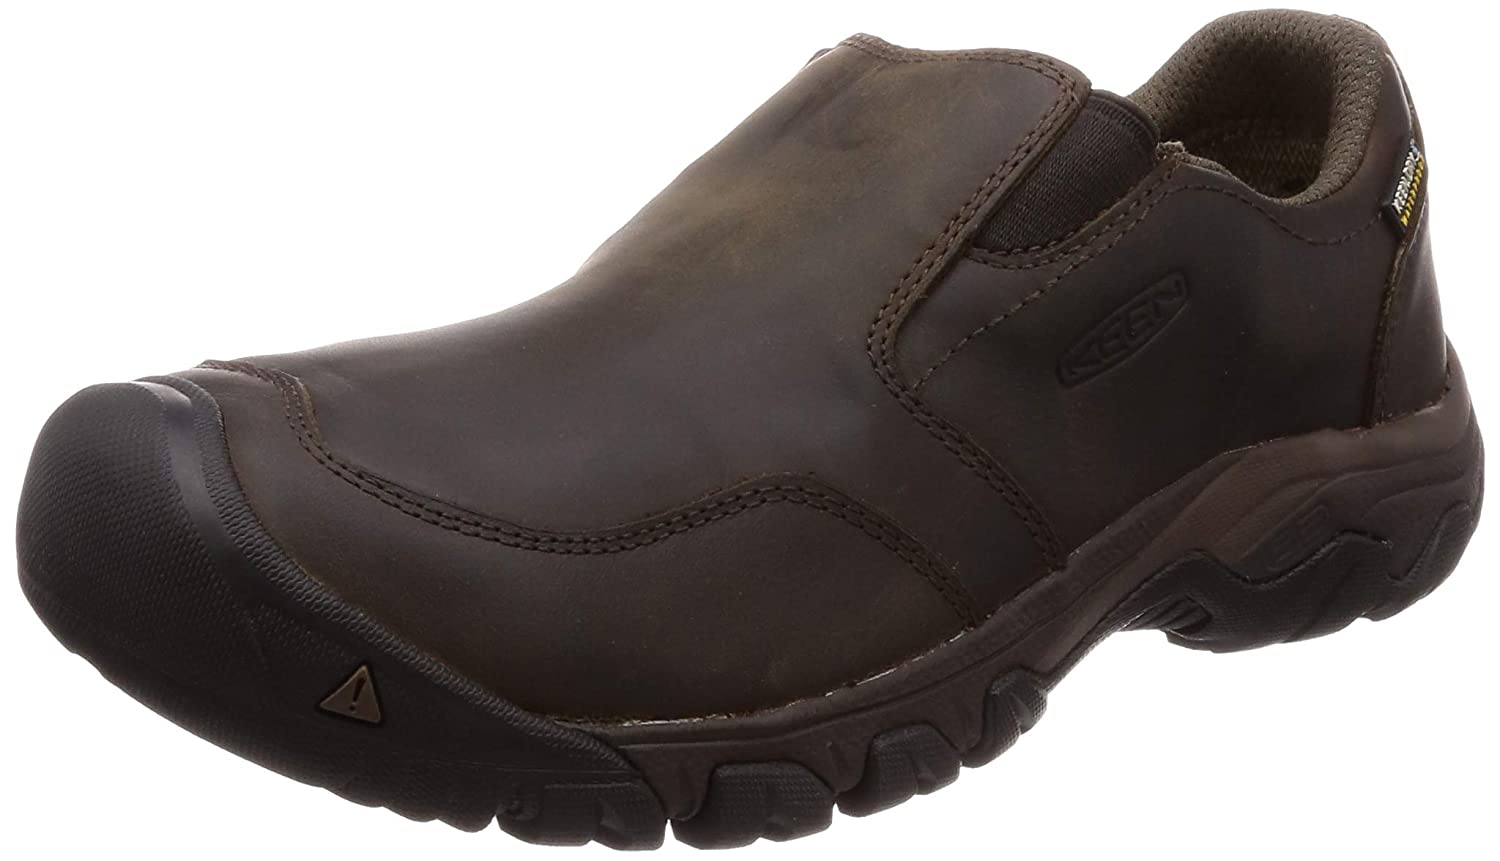 Dark Earth KEEN Mens BRIXEN II WP Hiking shoes